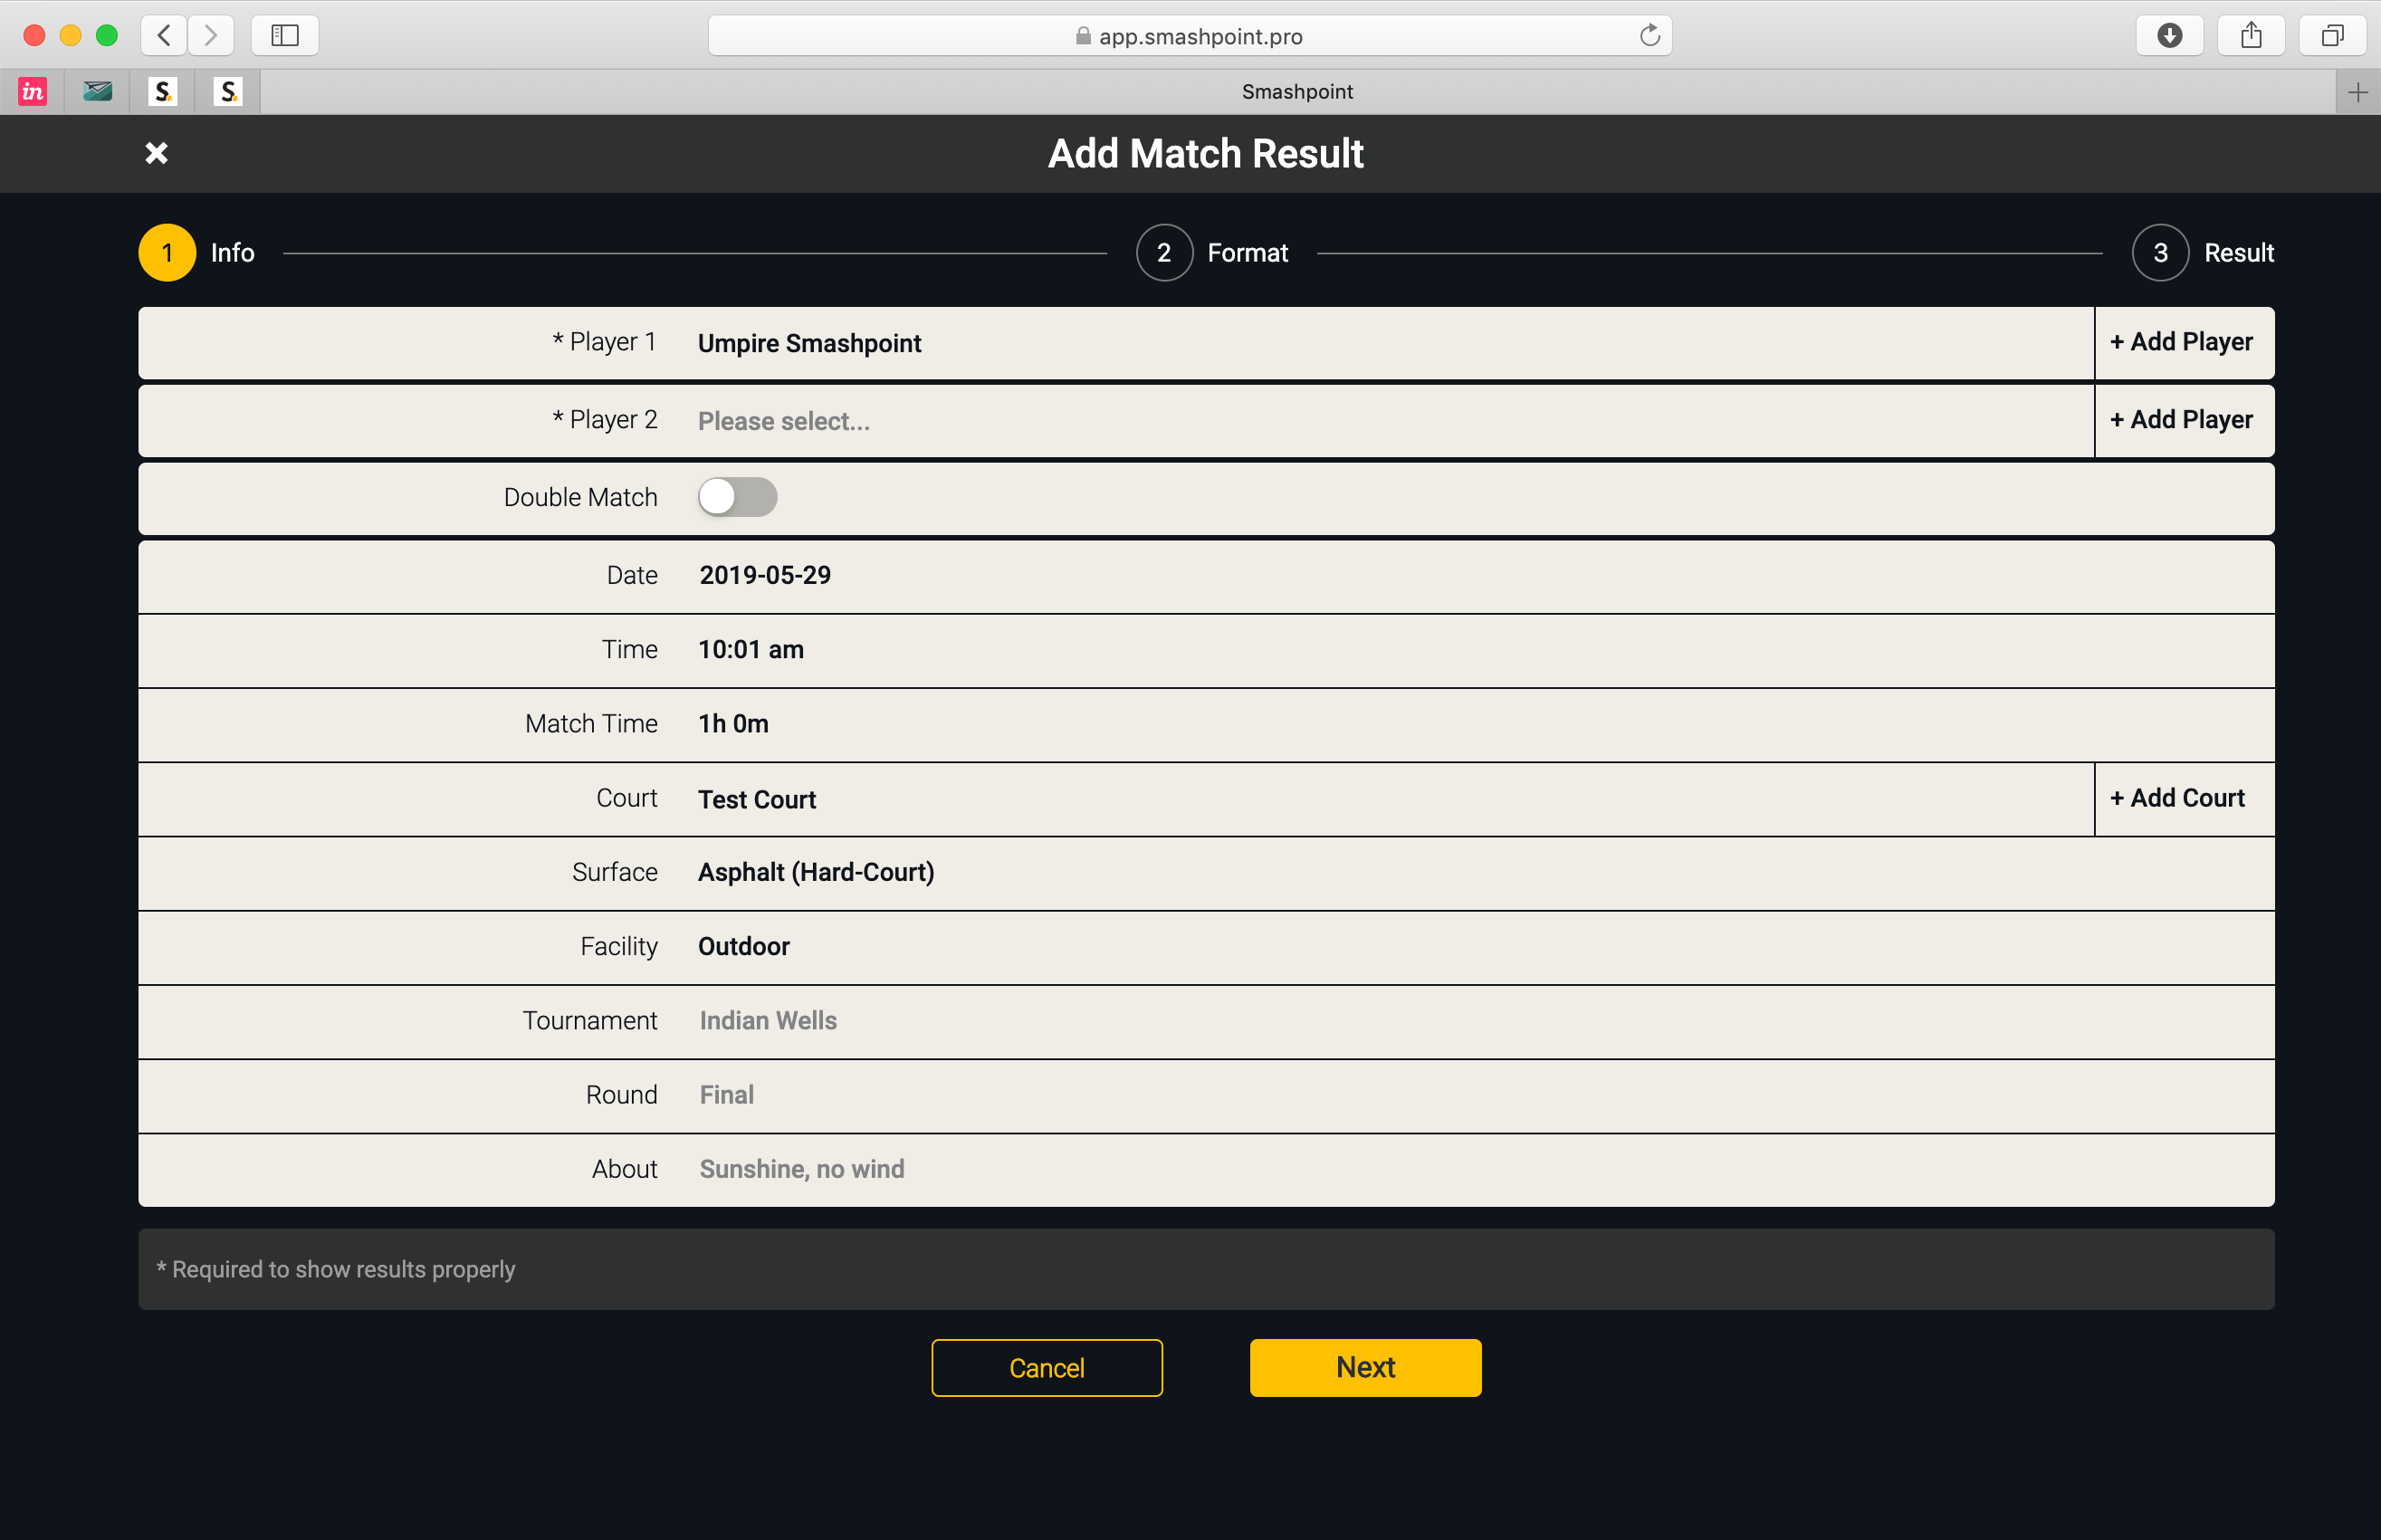 Smashpoint Web App – Add Match